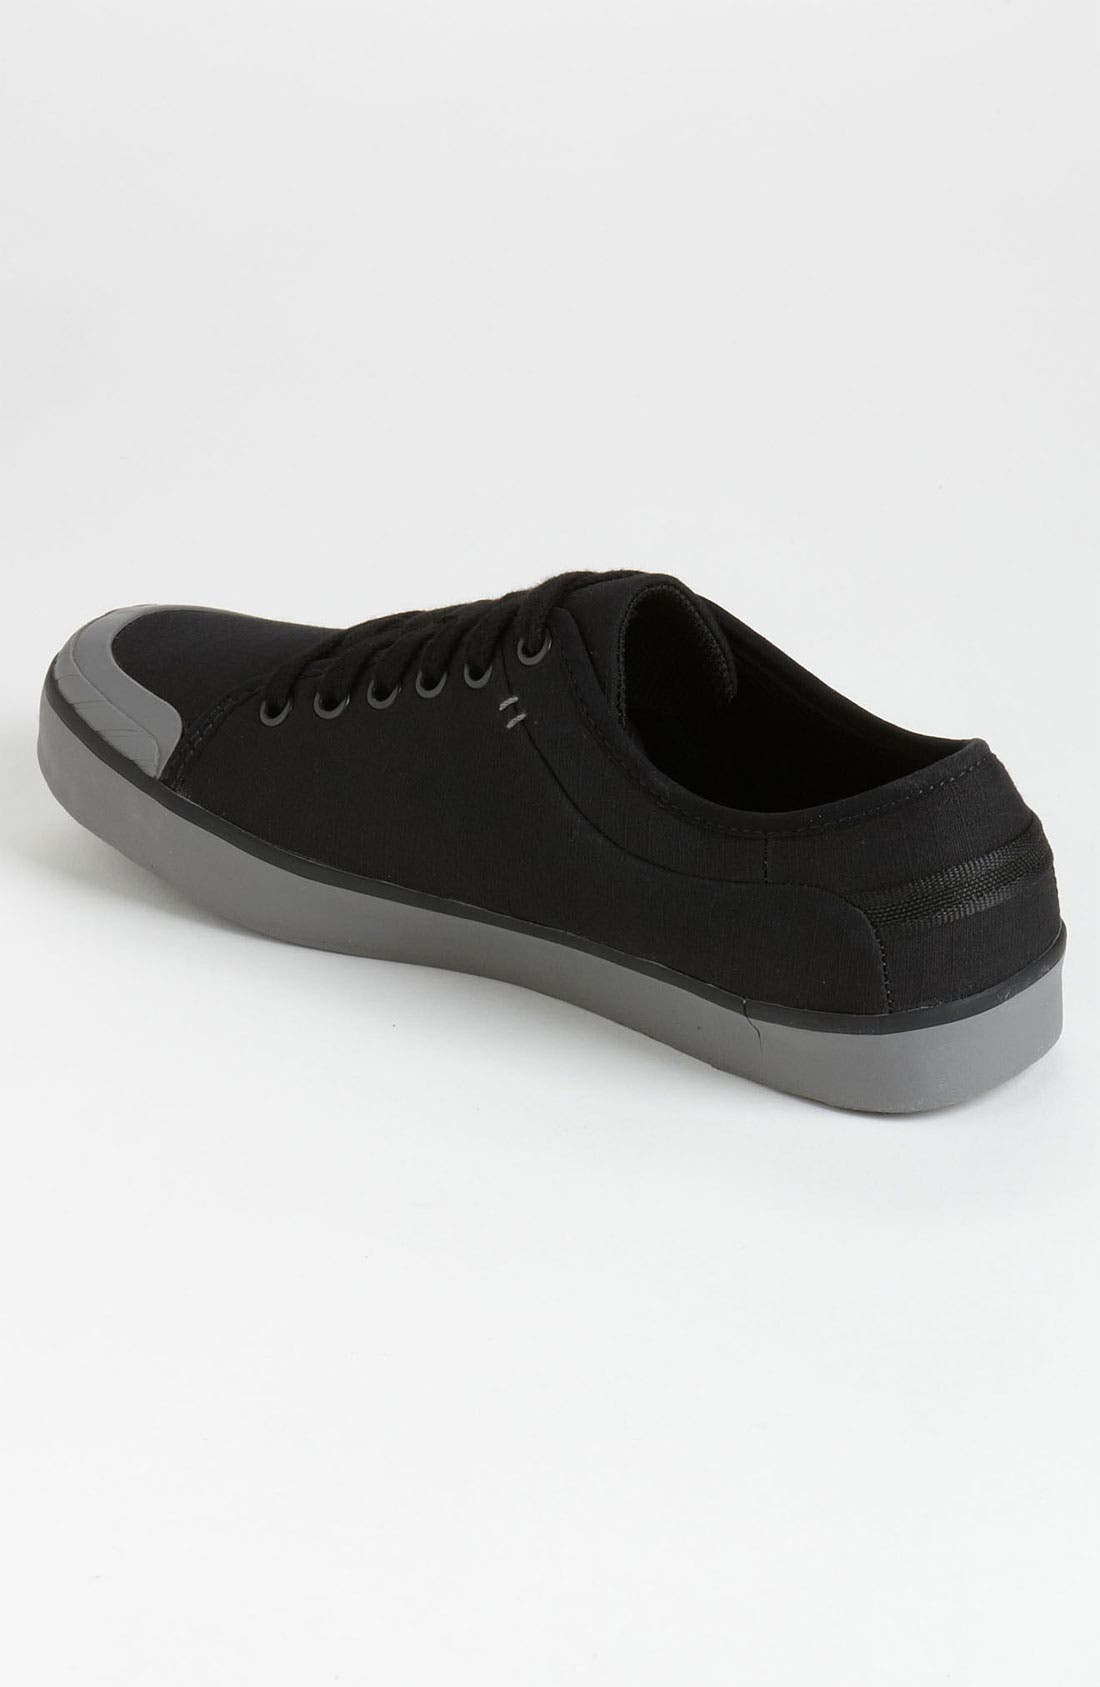 TEVA,                             'Joyride' Sneaker,                             Alternate thumbnail 3, color,                             001